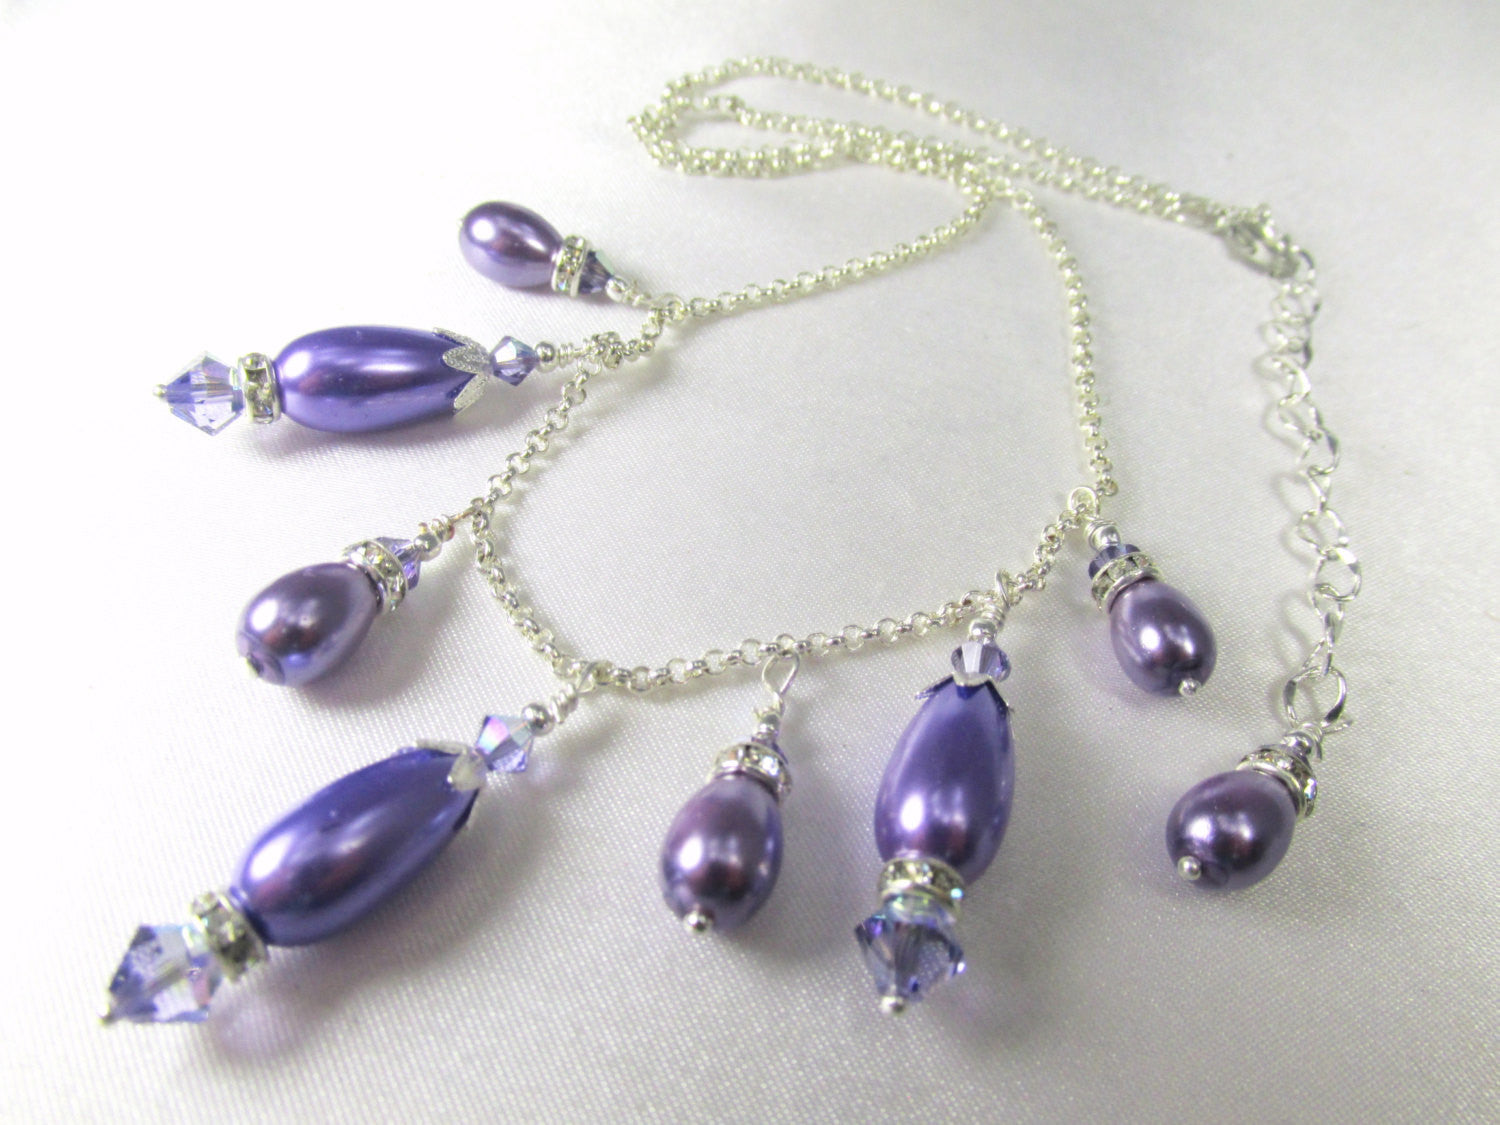 Purple Tanzanite Pearl Necklace with Swarovski Crystals and Pearl Teardrops on Silver Fill Chain - Odyssey Creations